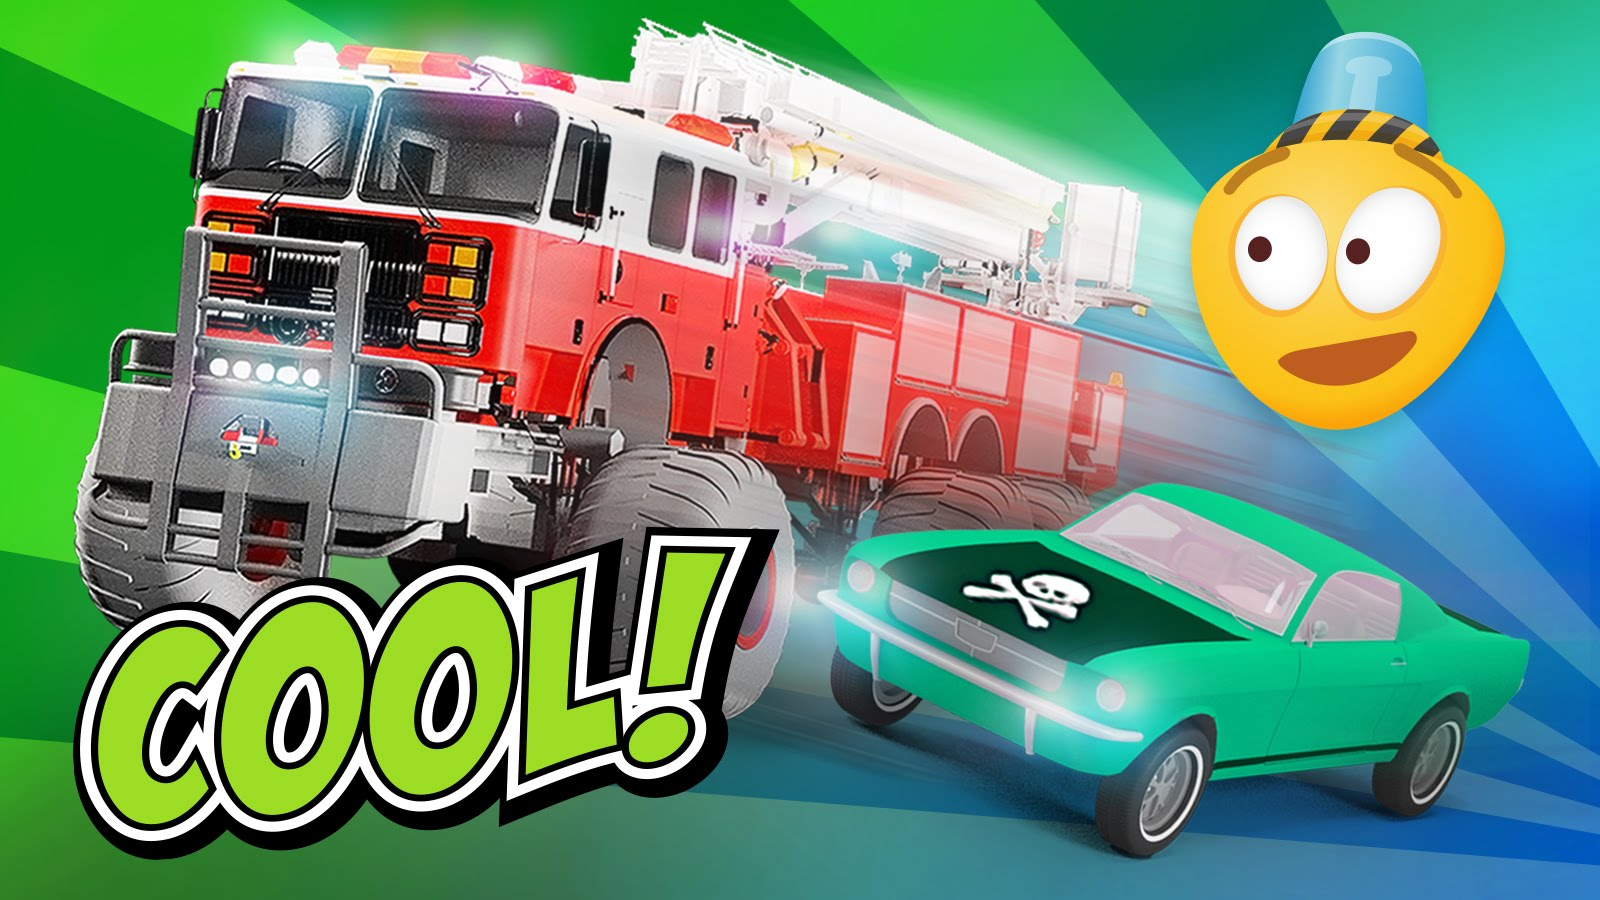 free police cartoon for kids education and interactive